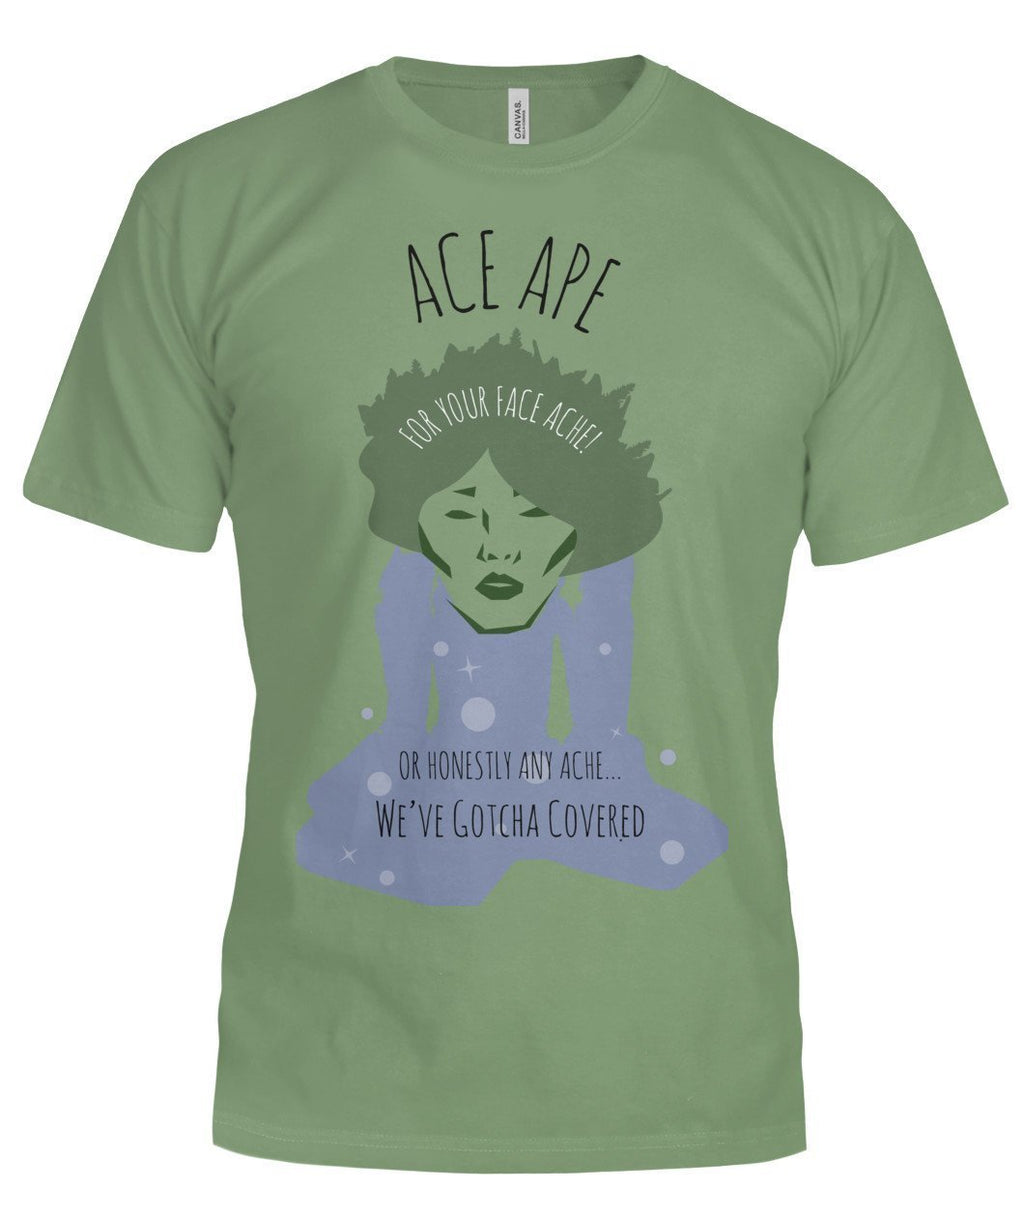 Short Sleeves Leaf / S Face Ache Unisex Tee (Semi-Fitted) AceApe CBD Dispensary